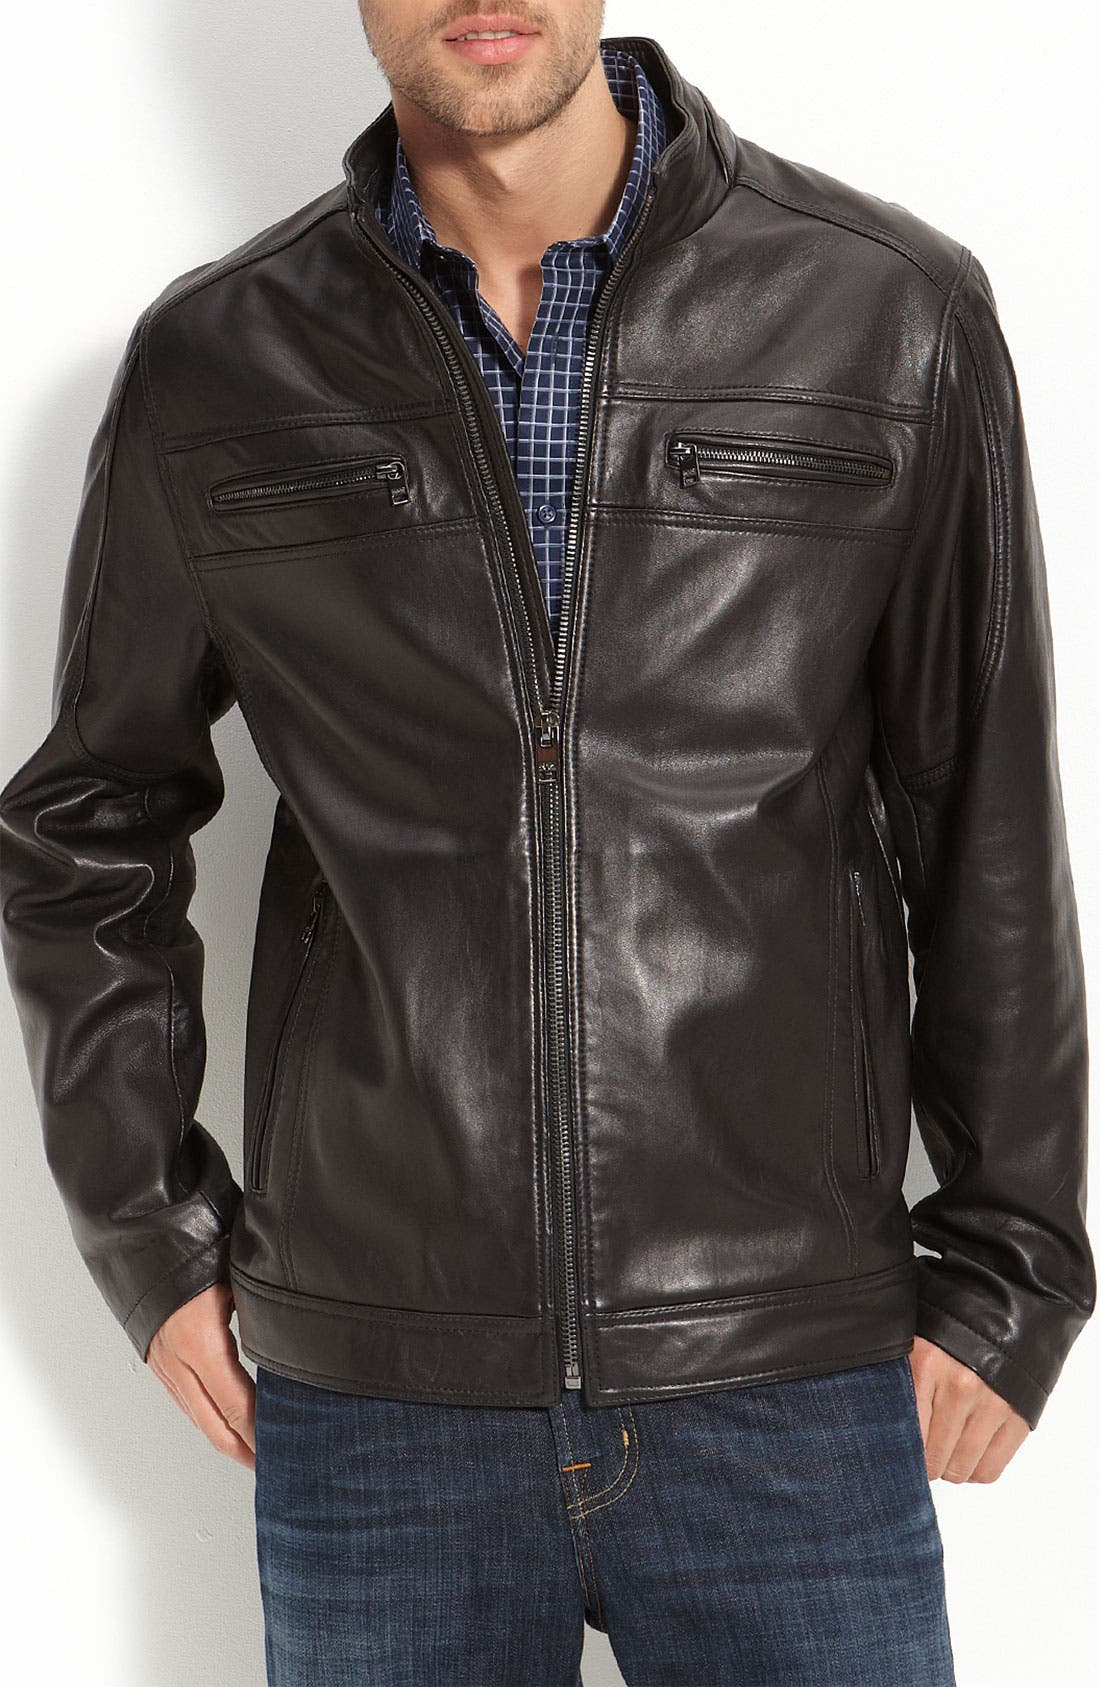 Alternate Image 1 Selected - Marc New York 'Jackson' Leather Jacket